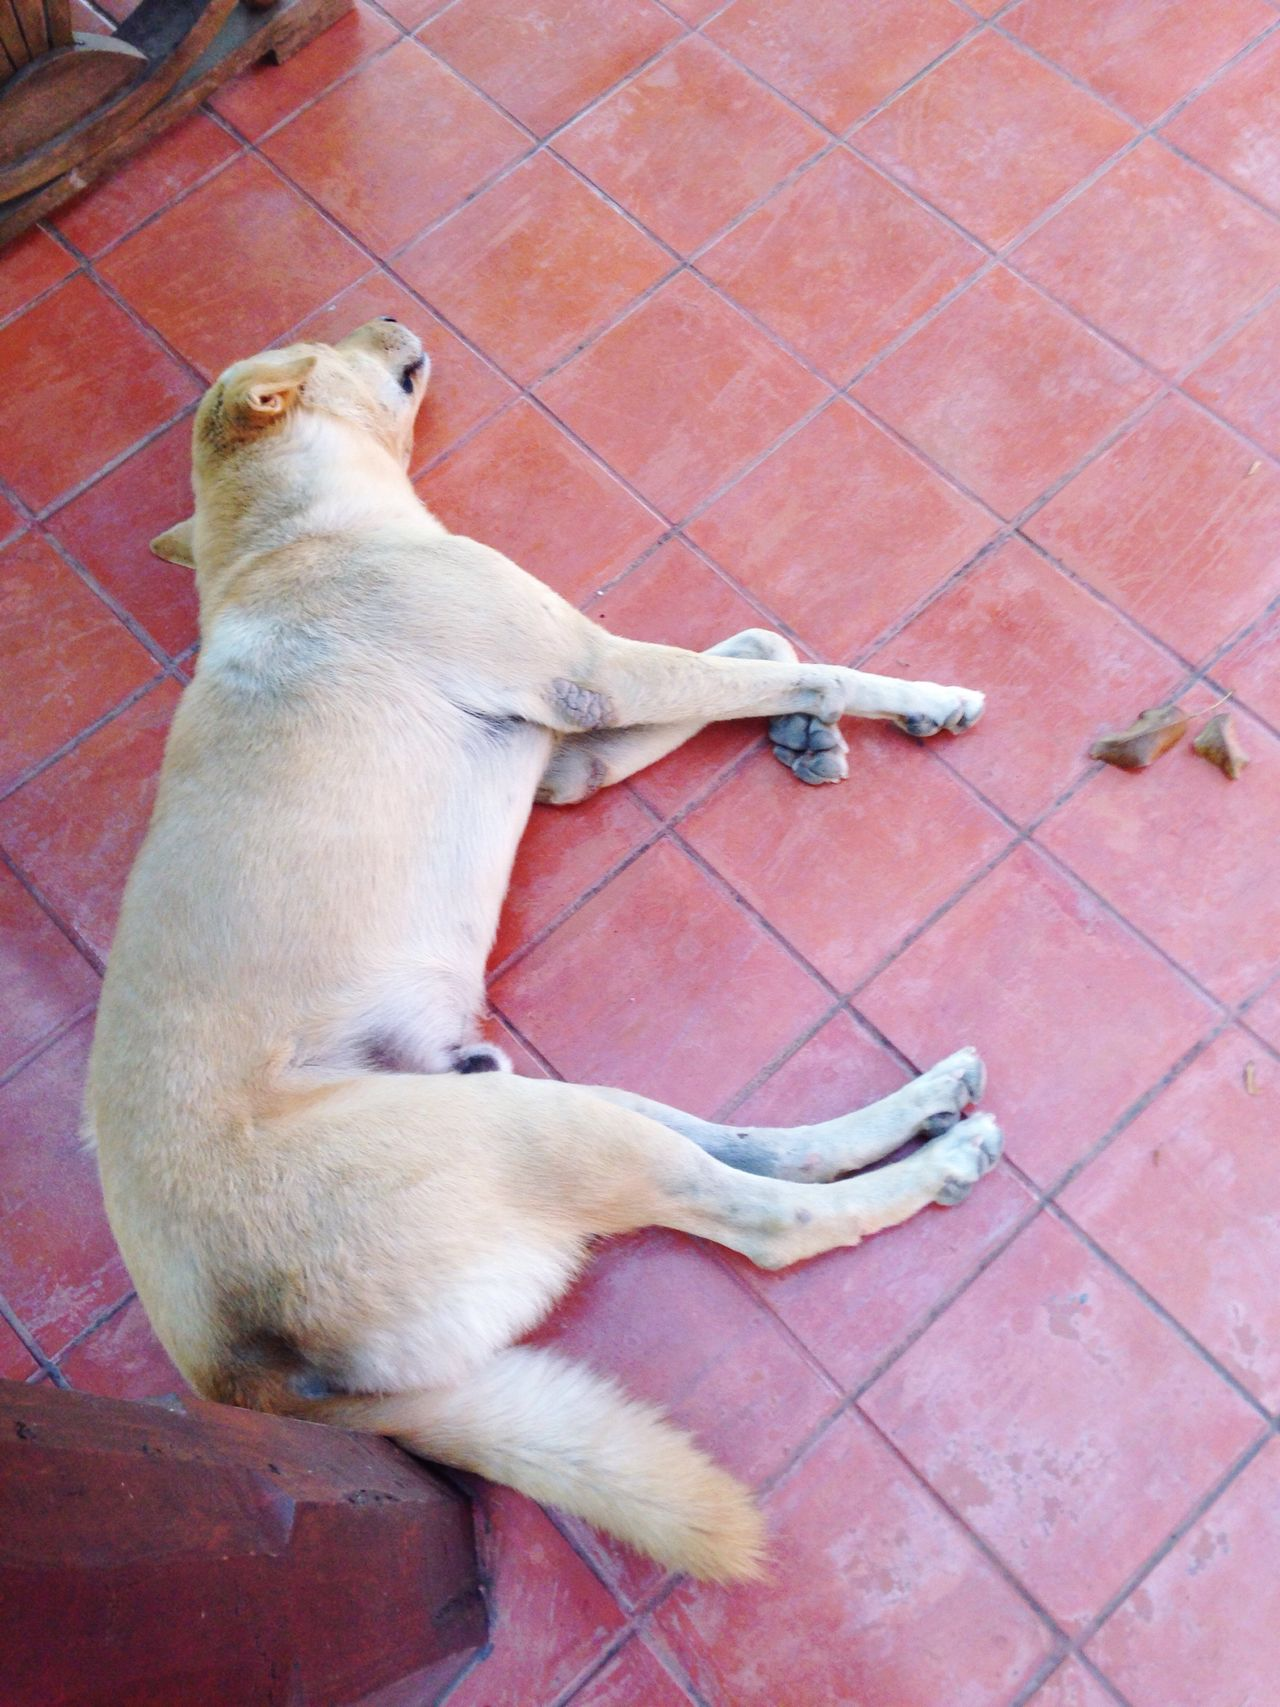 Sleepy dog Sleep Dog On Red Floor Near Pole Ground Floor Afternoon Sleep Brown Dog Day Nap Happy Sleepy Deep Sleep Nakornchaisri Thailand